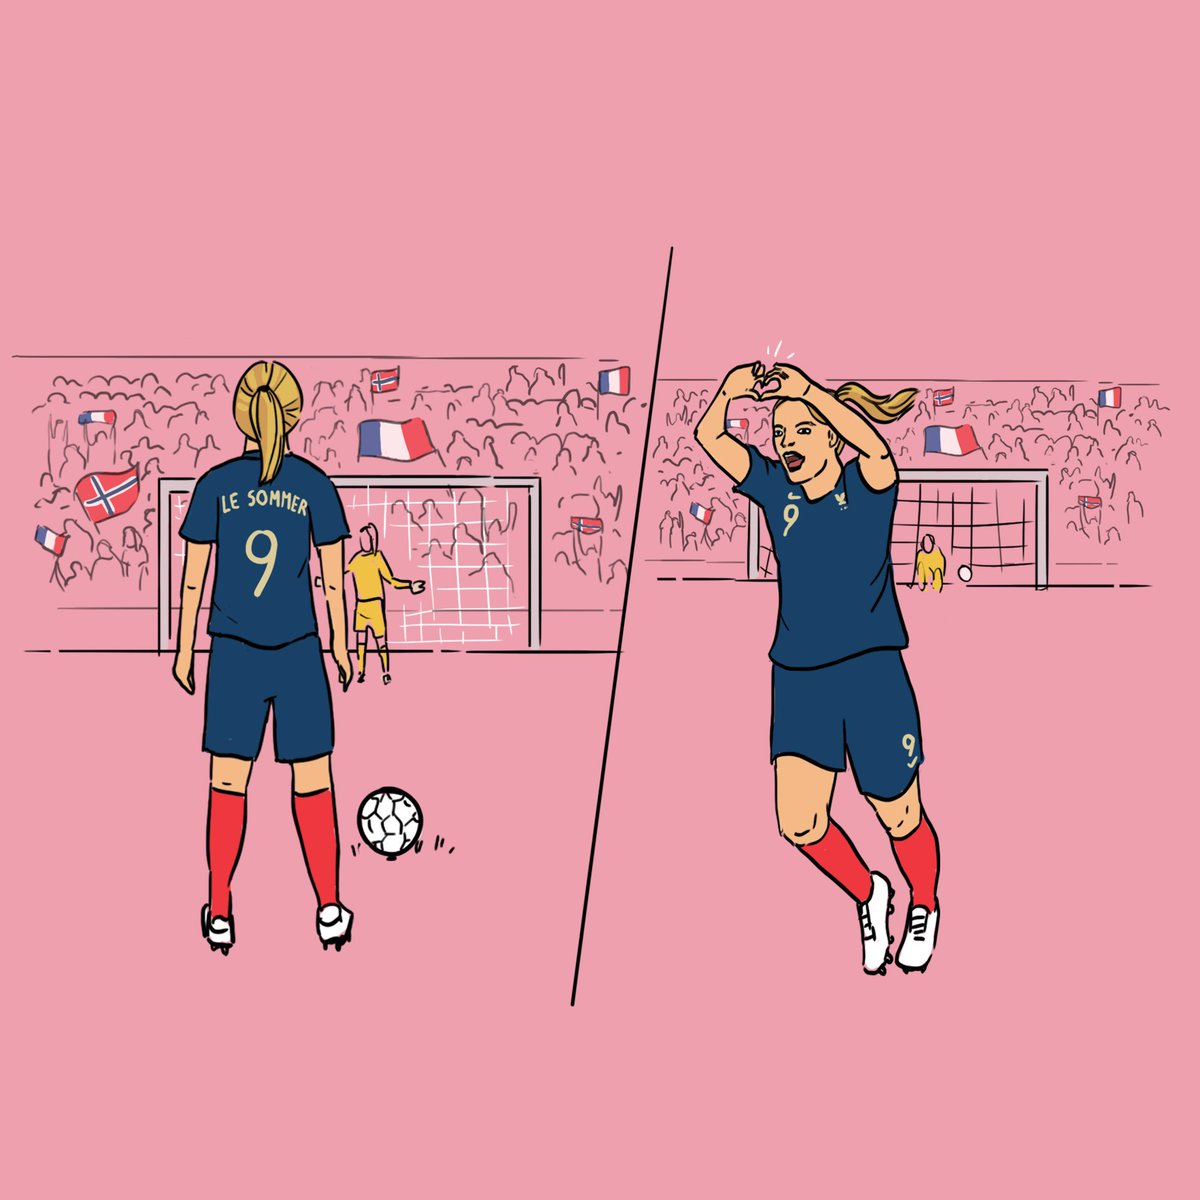 That moment... when you stand to take a penalty in a World Cup match at home. Nailed it!   Together #WePlayStrong #FIFAWWC #FRANOR <br>http://pic.twitter.com/p5EMHBWNhI